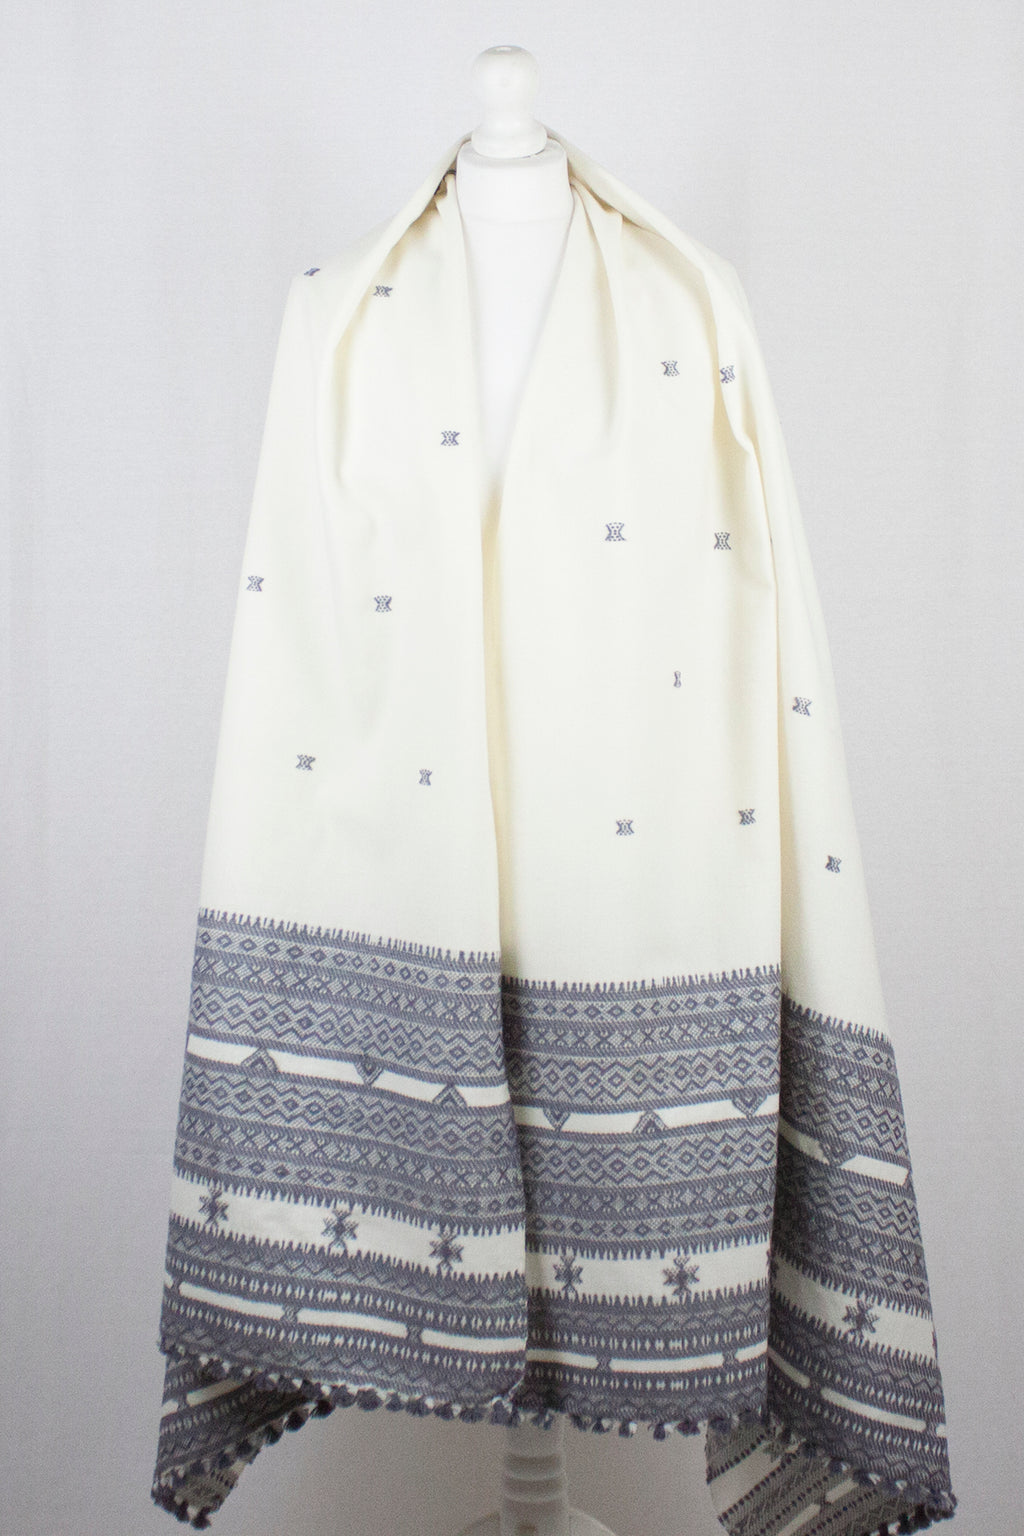 Booti and Border Embroidery Wool Shawl - Off White Grey